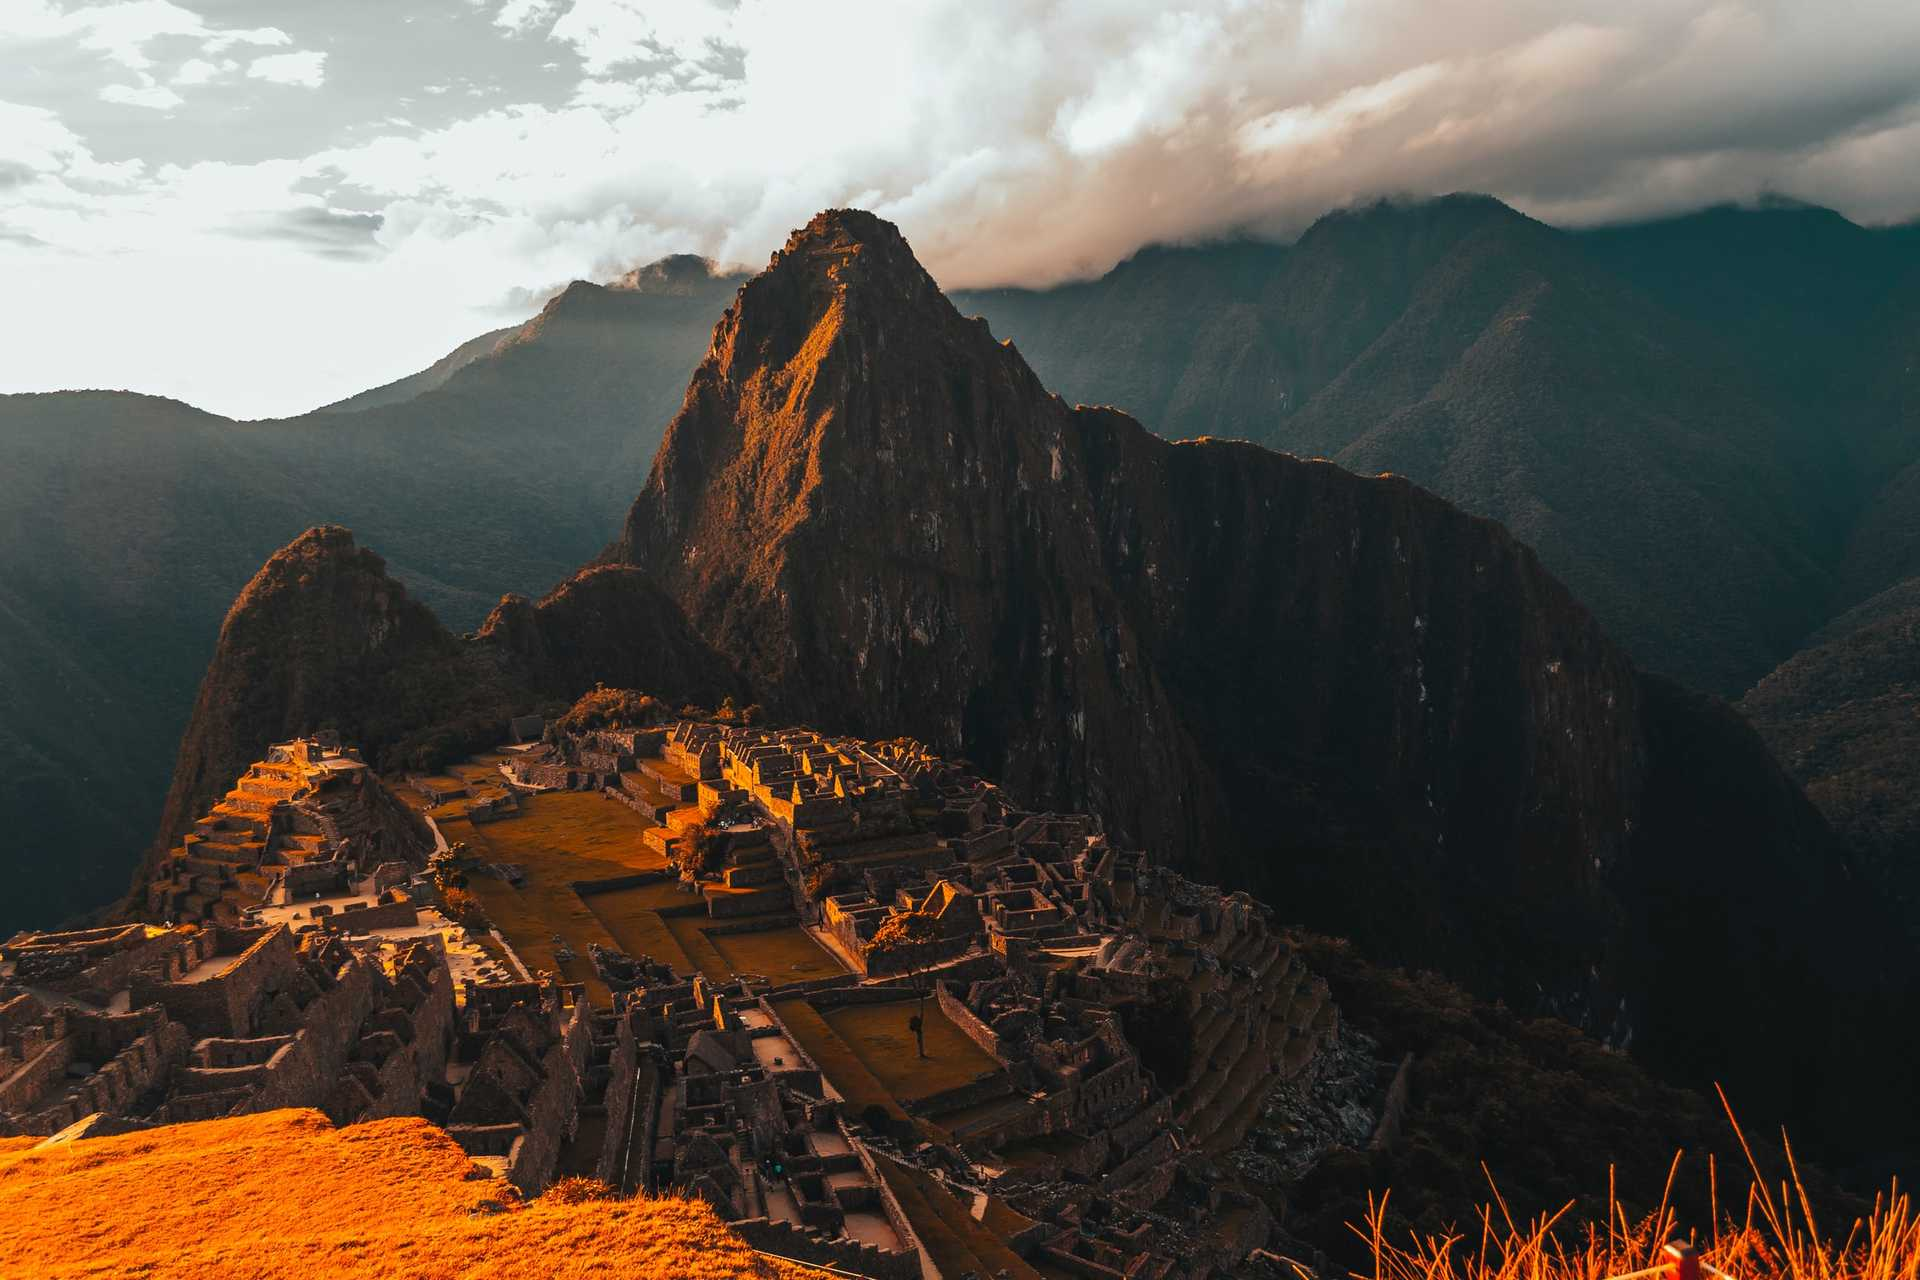 Machu Picchu bathed in orange light